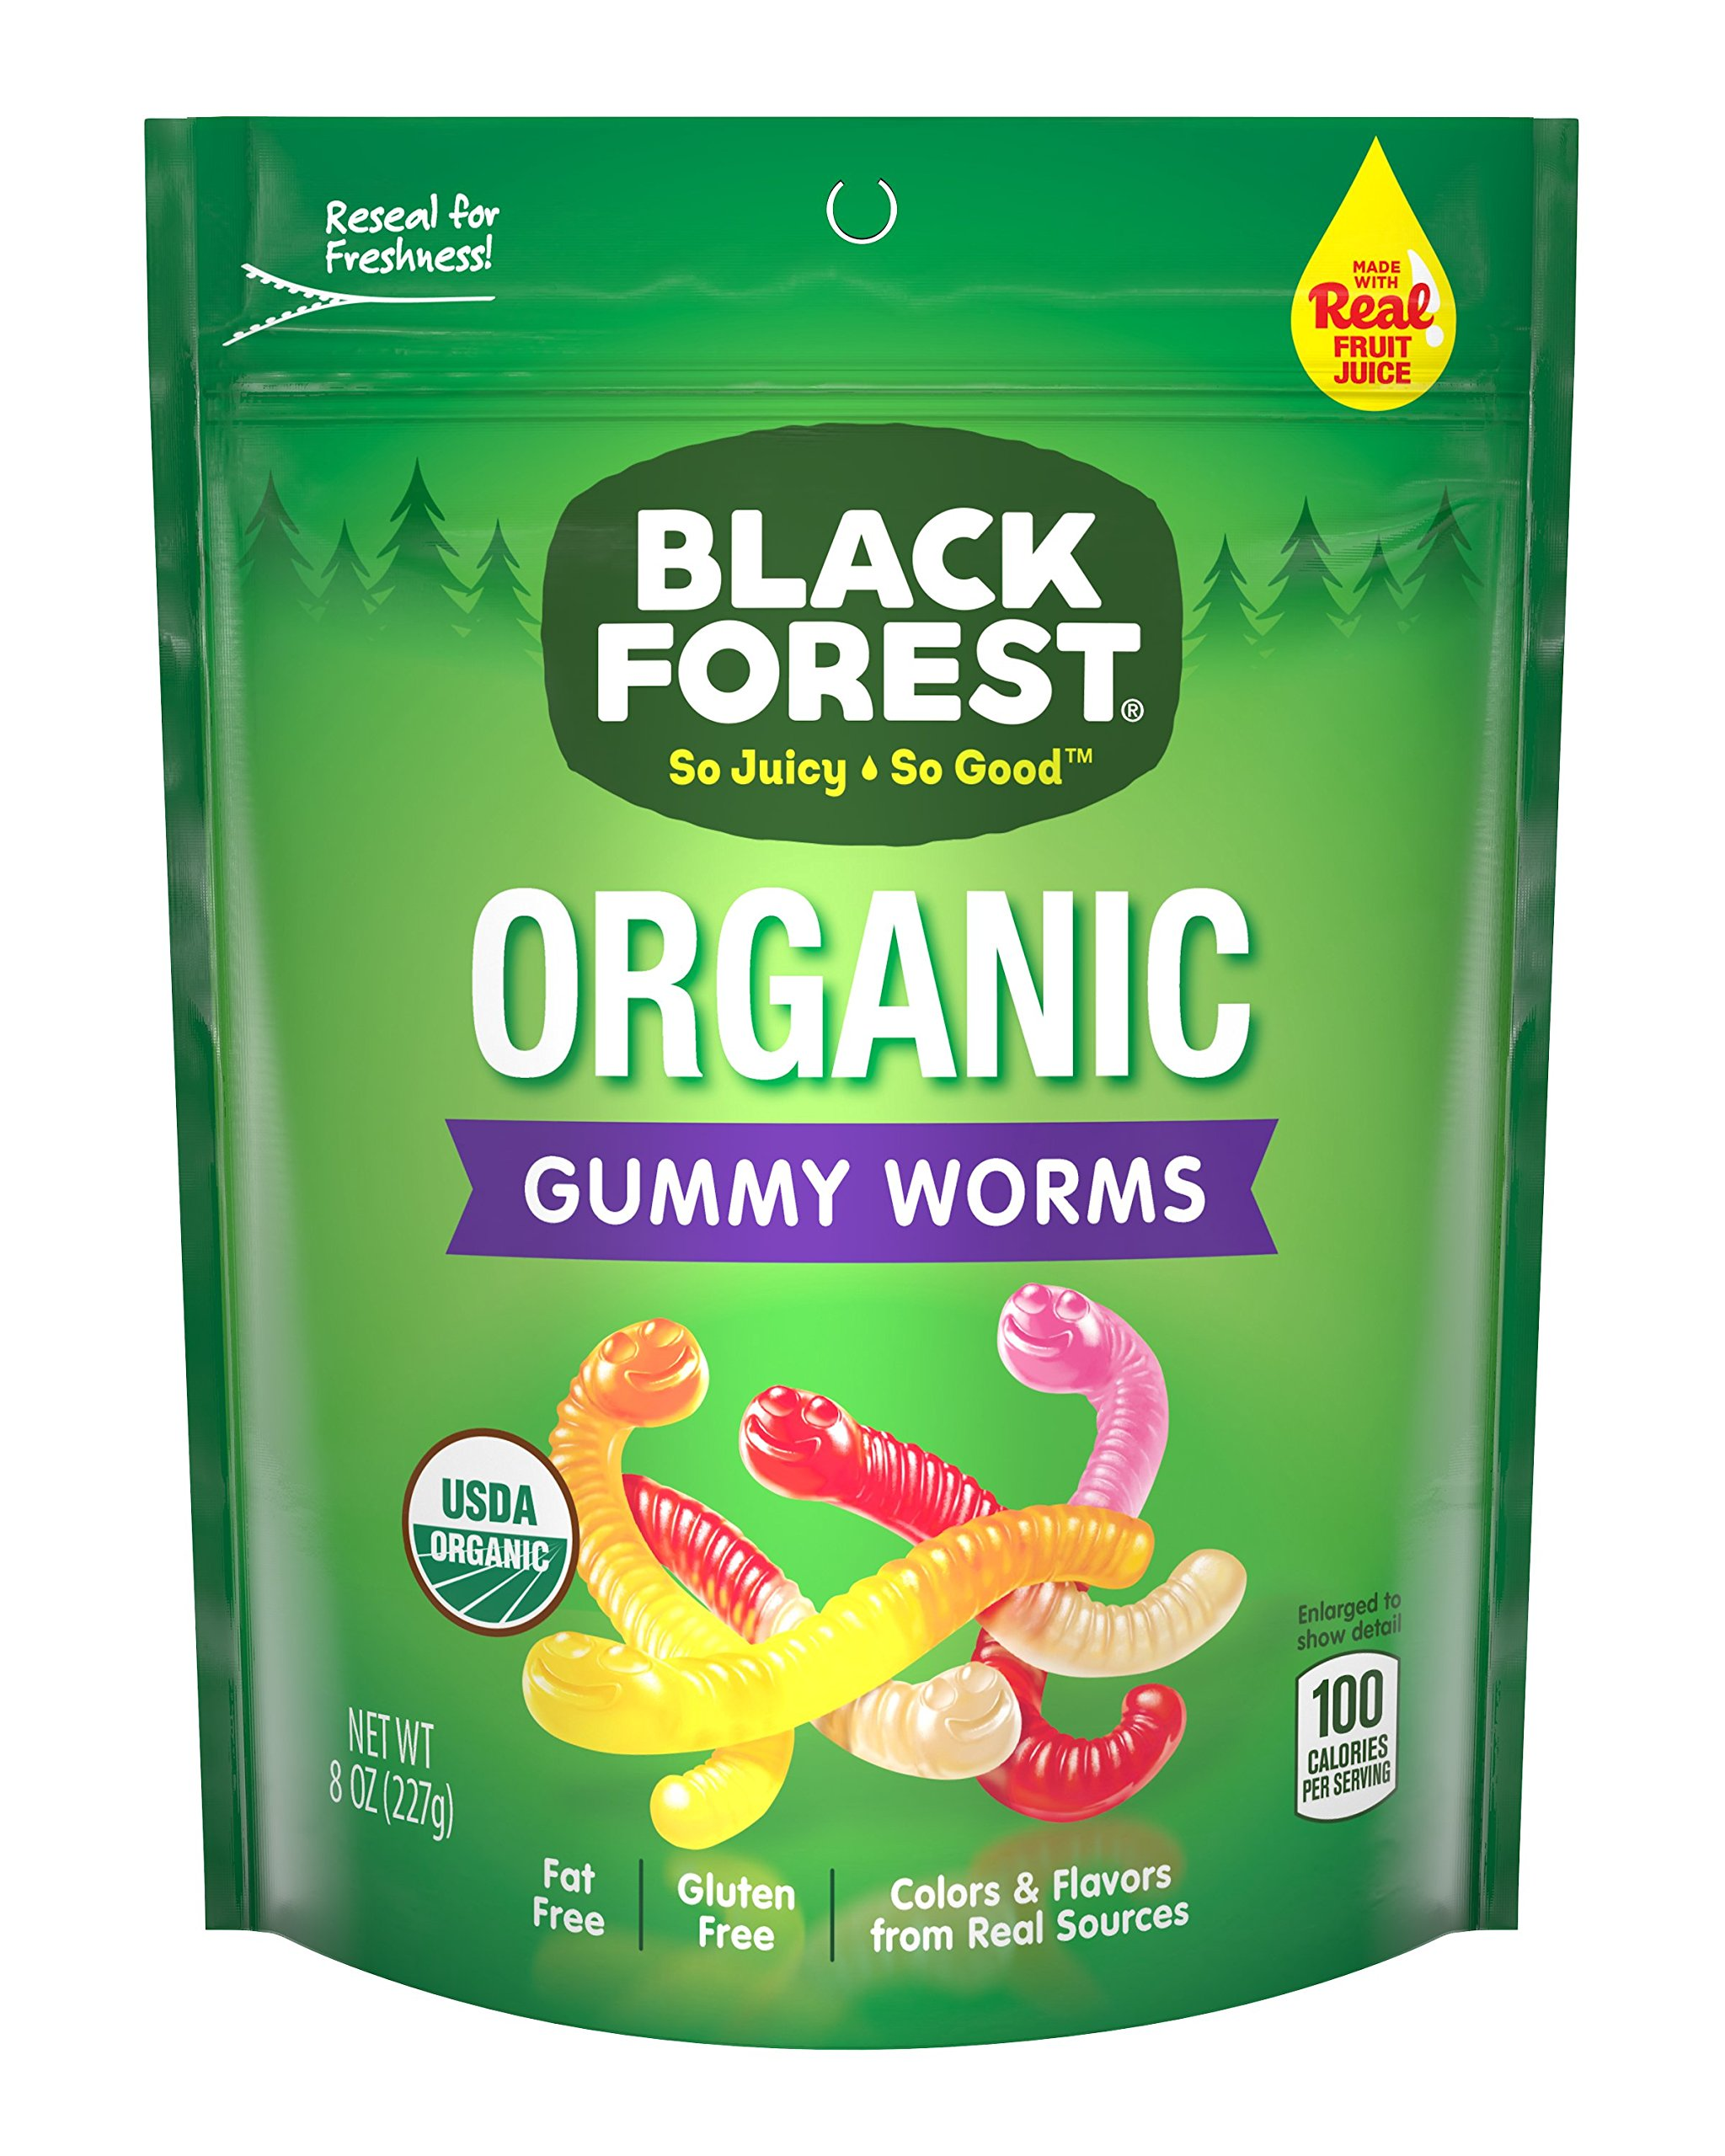 Black Forest Organic Gummy Worms Candy, Cherry, Orange, Pineapple, Lemonand Apple, 8 Ounce (Pack of 6)